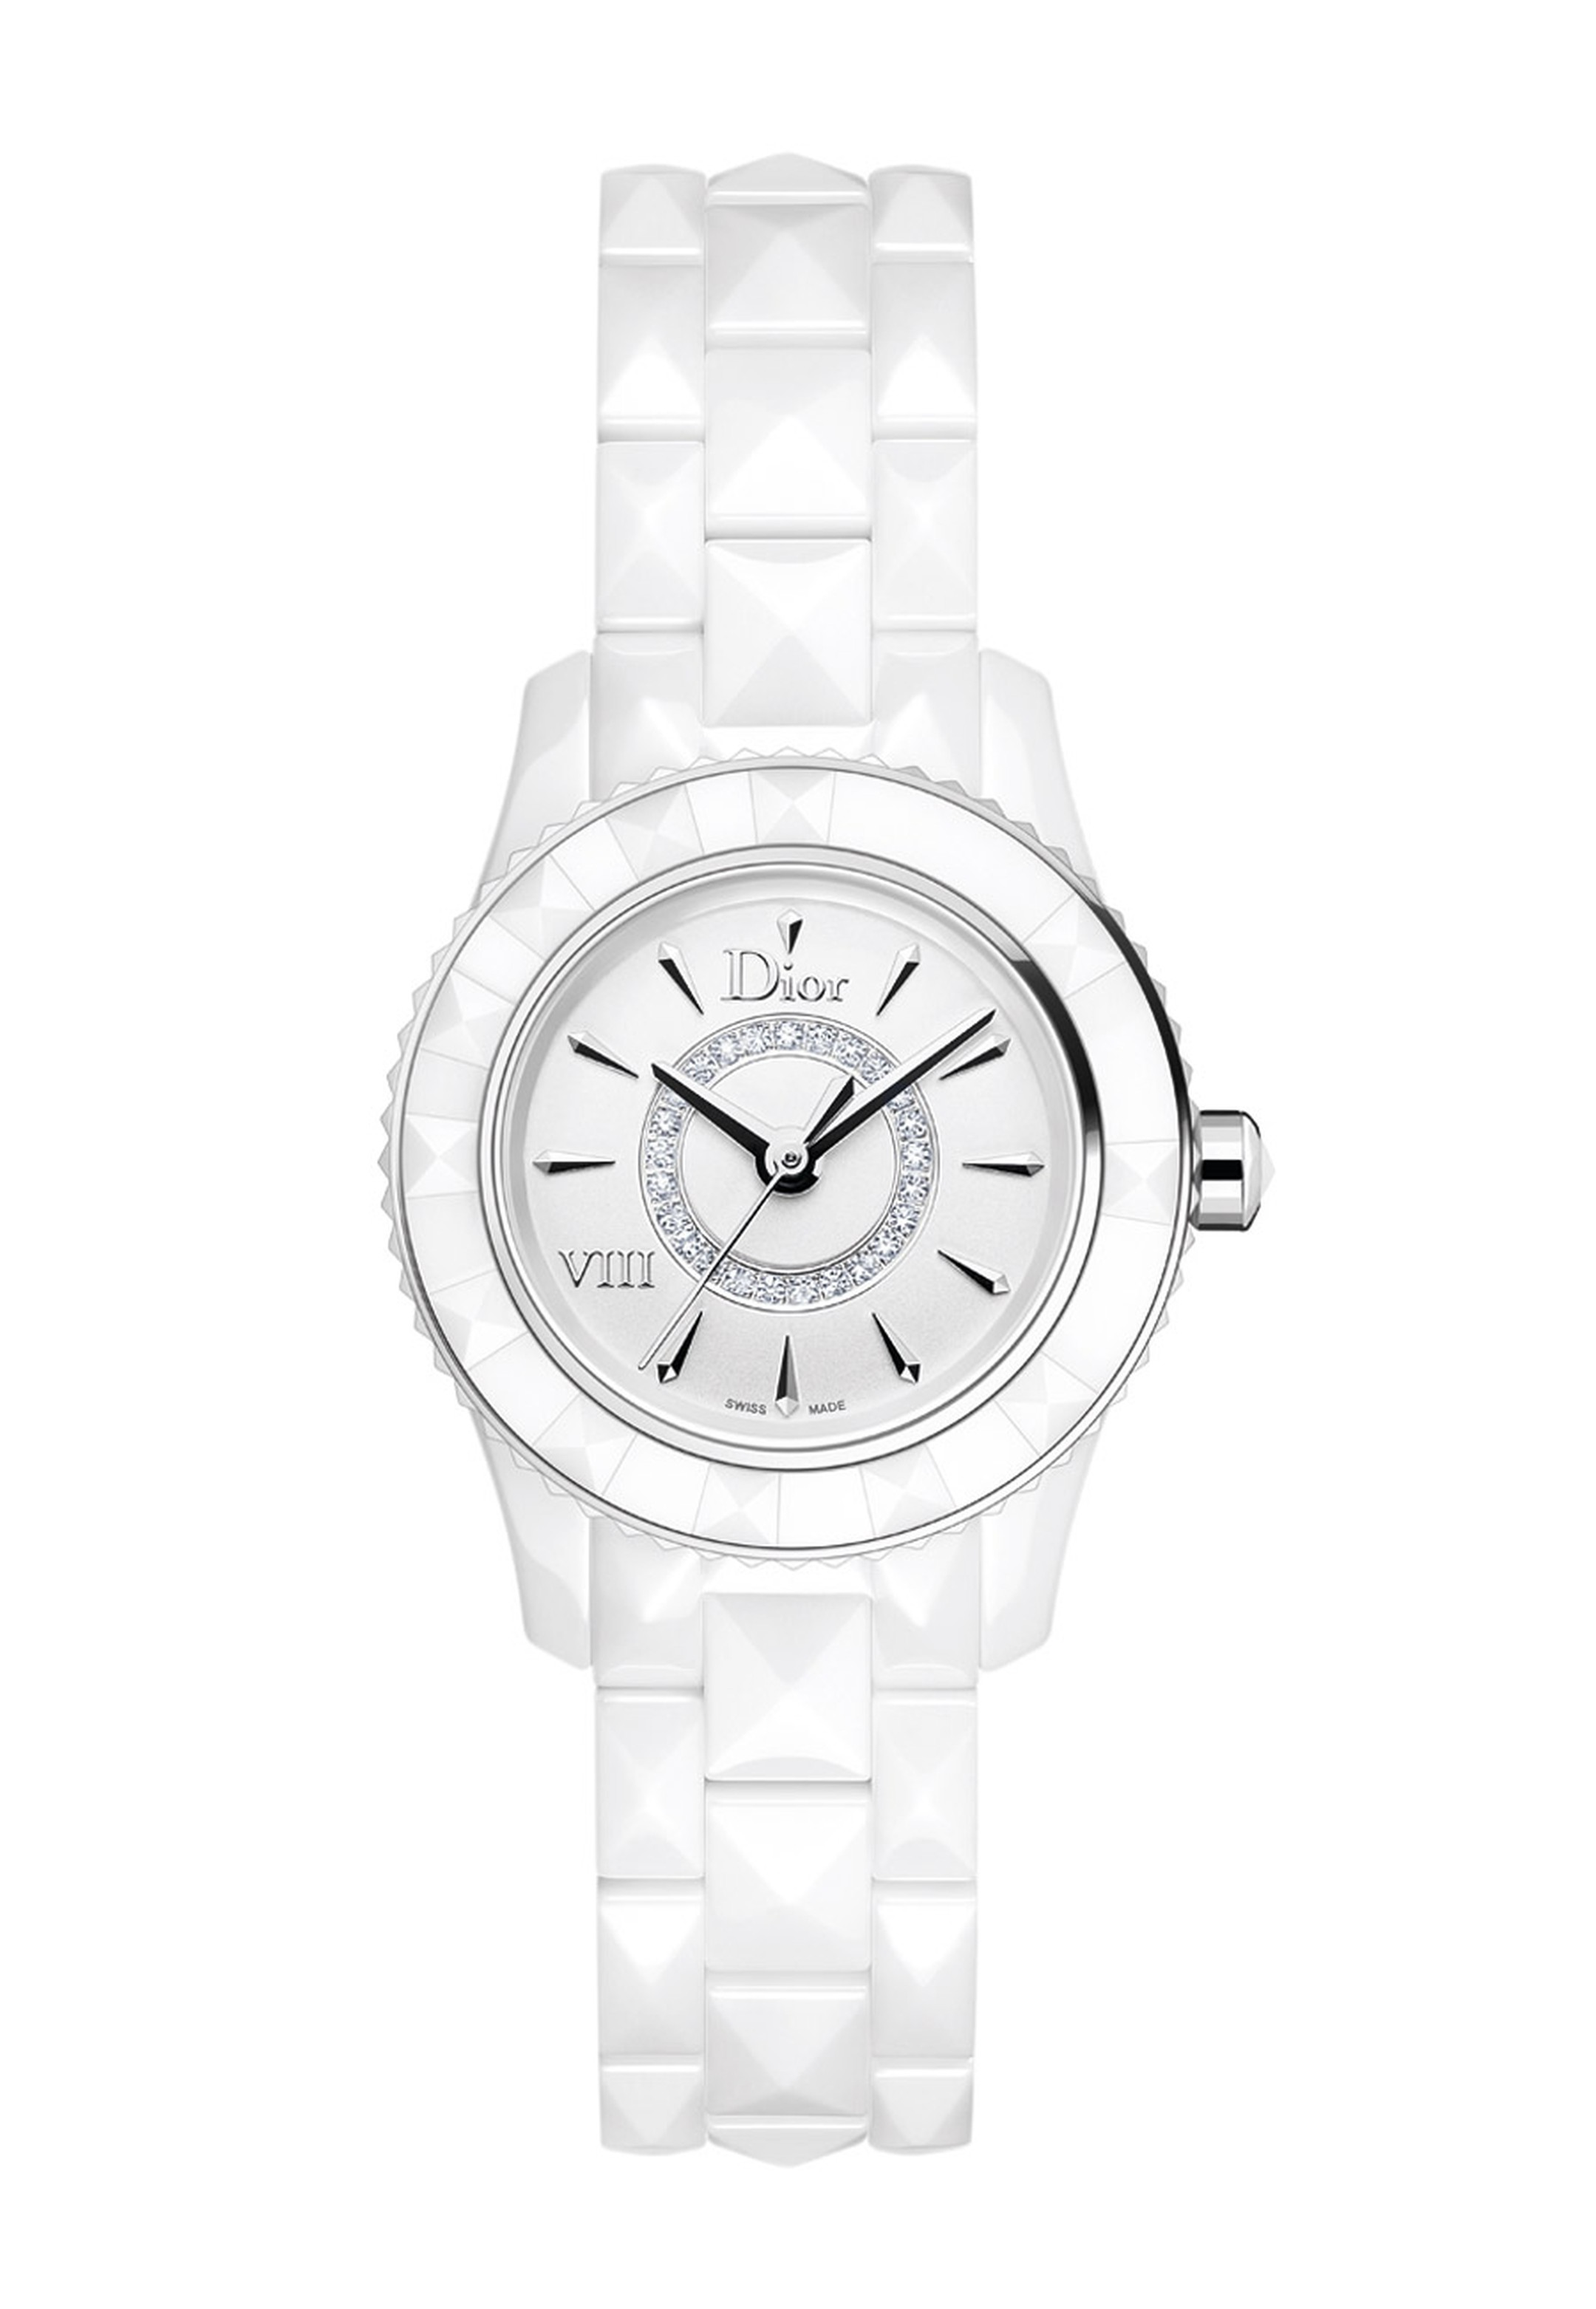 DIOR-VIII-WHITE-QUARTZ-DIAMOND-SET-DIAL-28mm